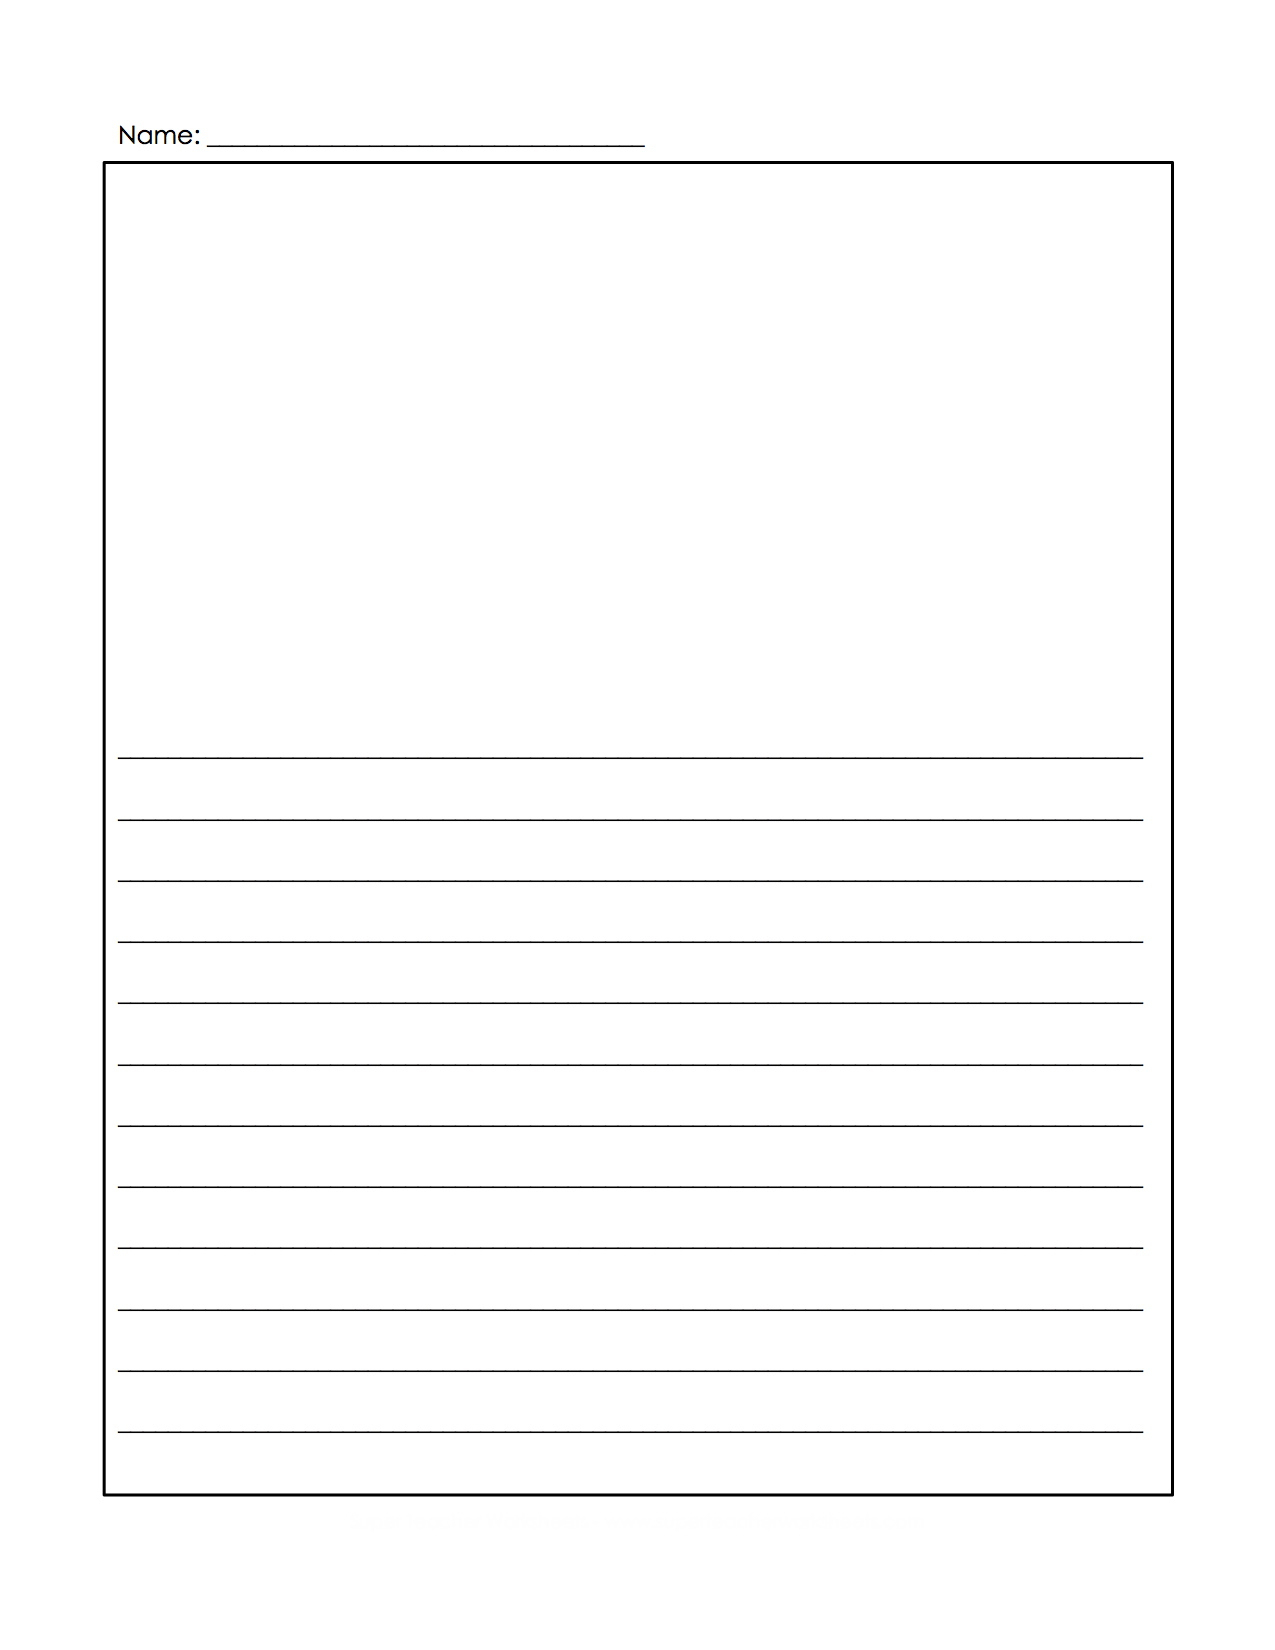 Free Printable Handwriting Paper With Picture Box | Download Them - Free Printable Writing Paper With Picture Box